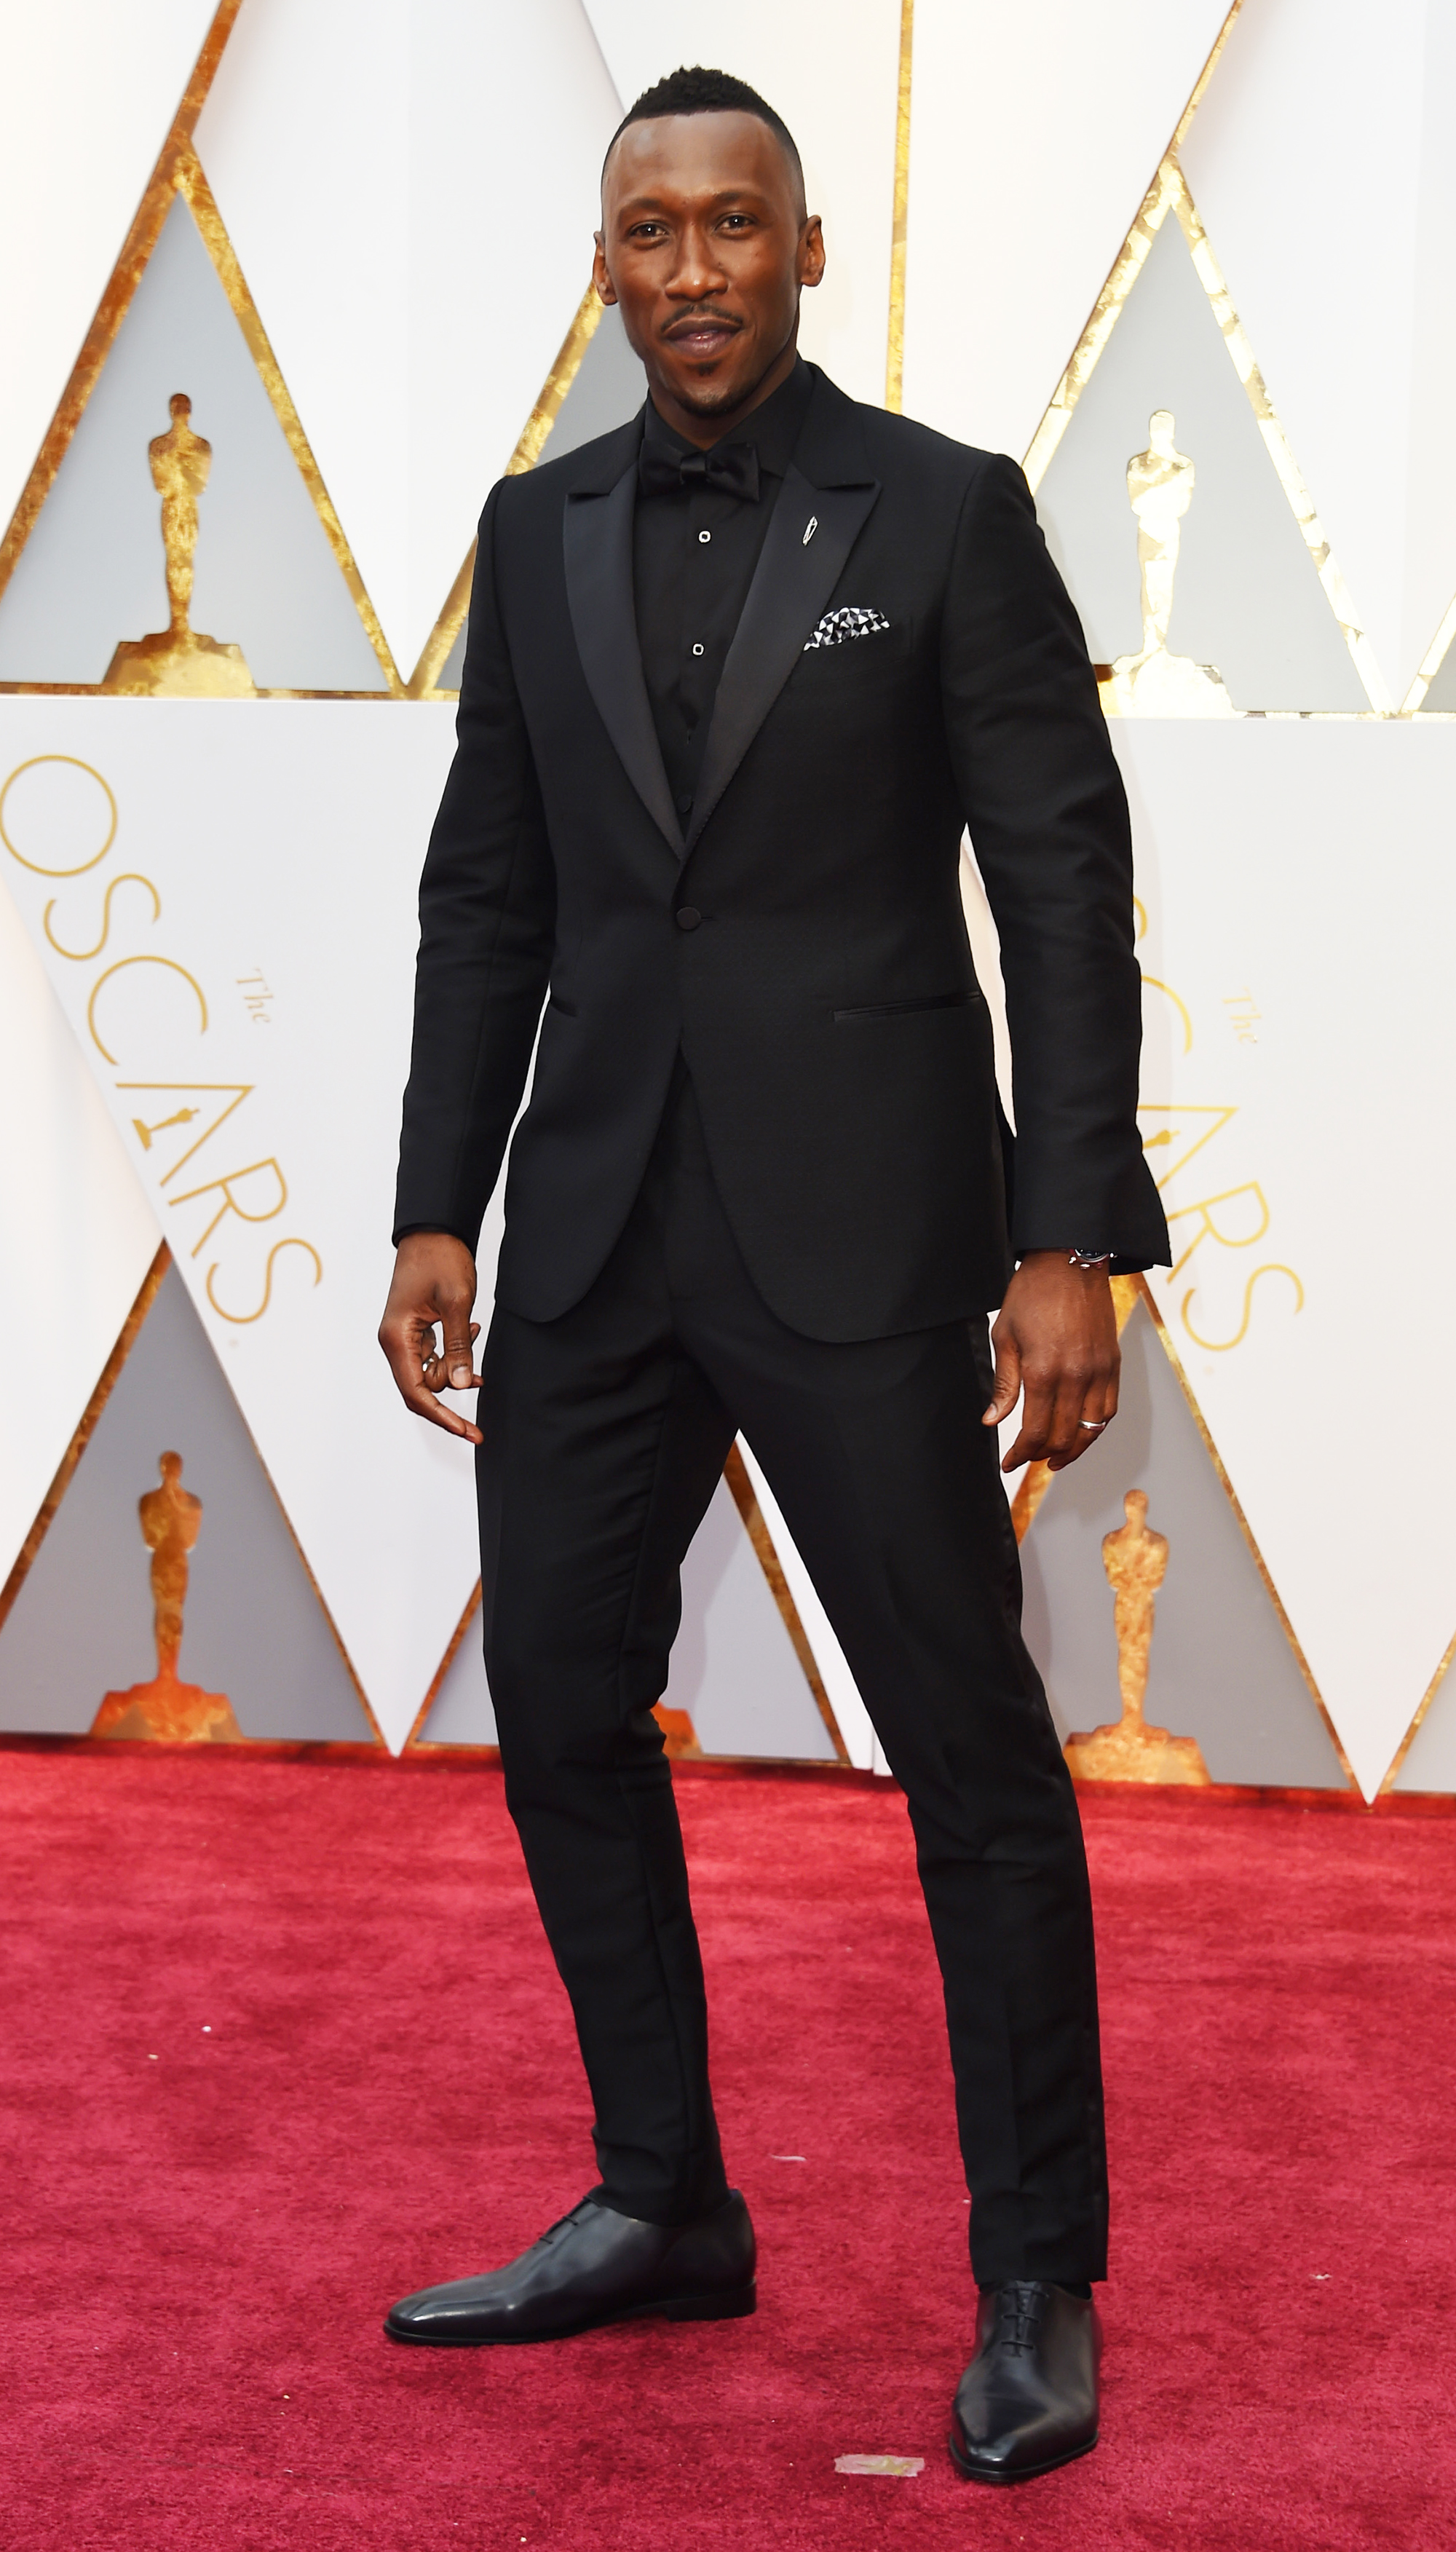 Mahershala Ali on the red carpet for the 89th Oscars, on Feb. 26, 2017 in Hollywood, Calif.